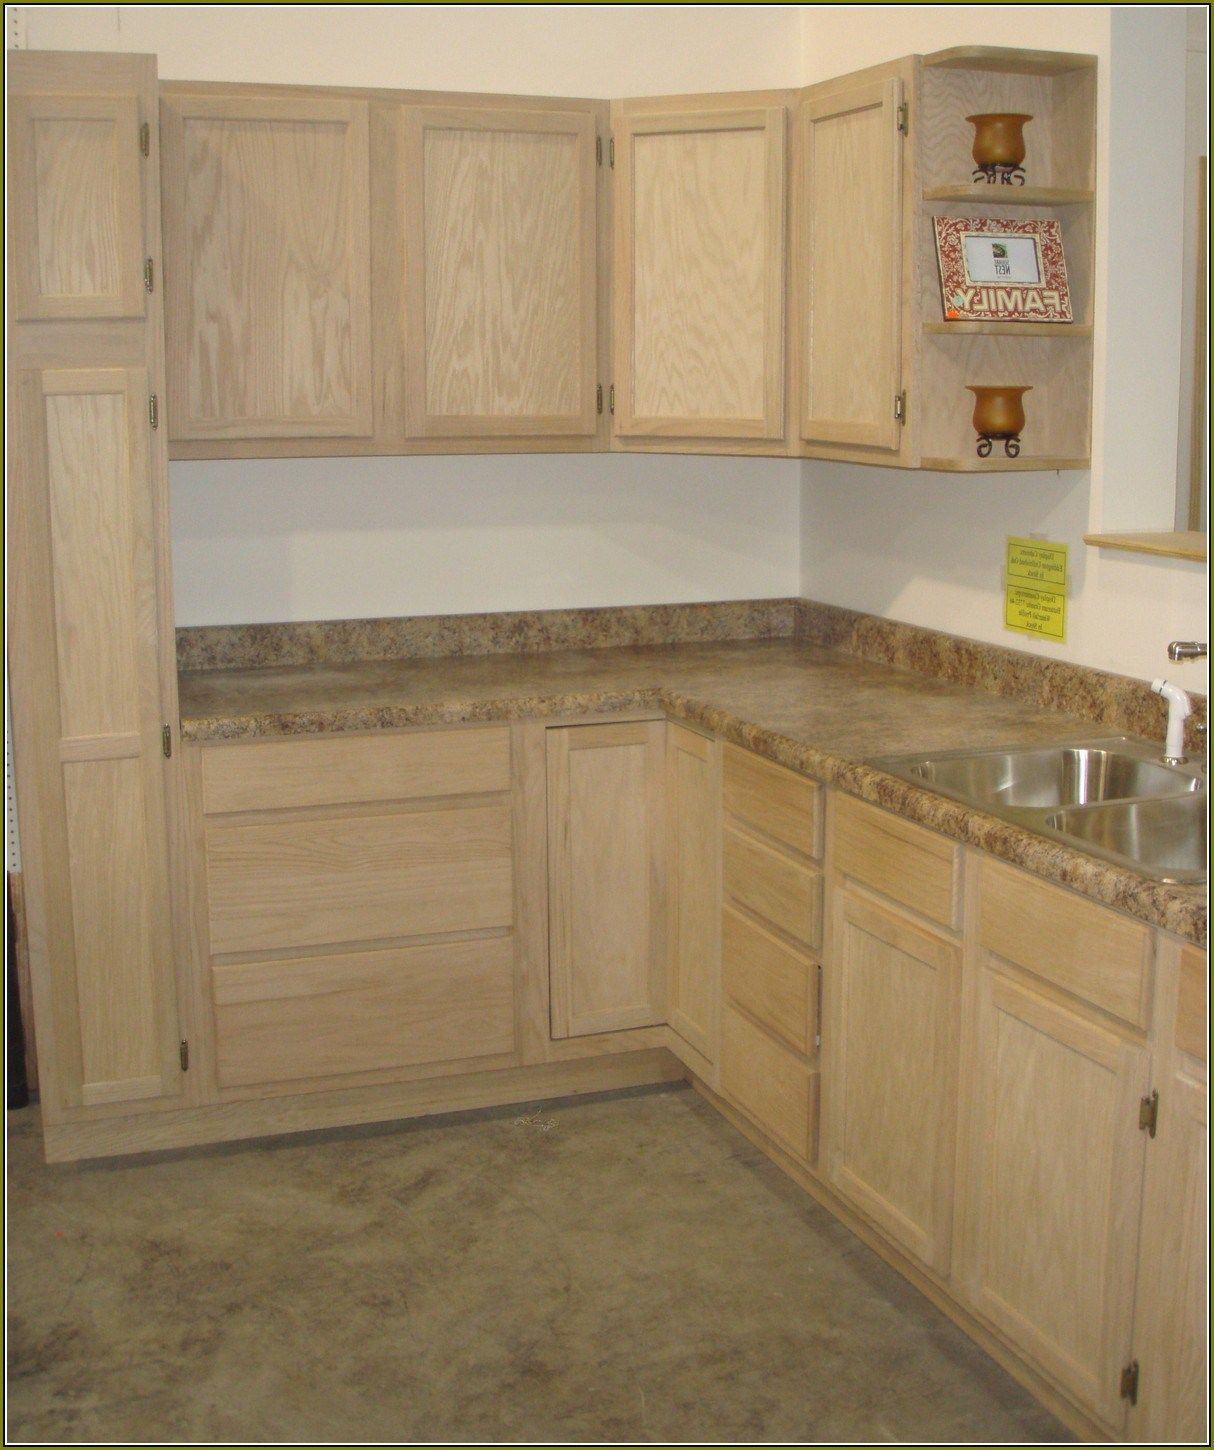 Home Improvements Refference Unfinished Pine Cabinets Depot Kitchen Emble Lowes